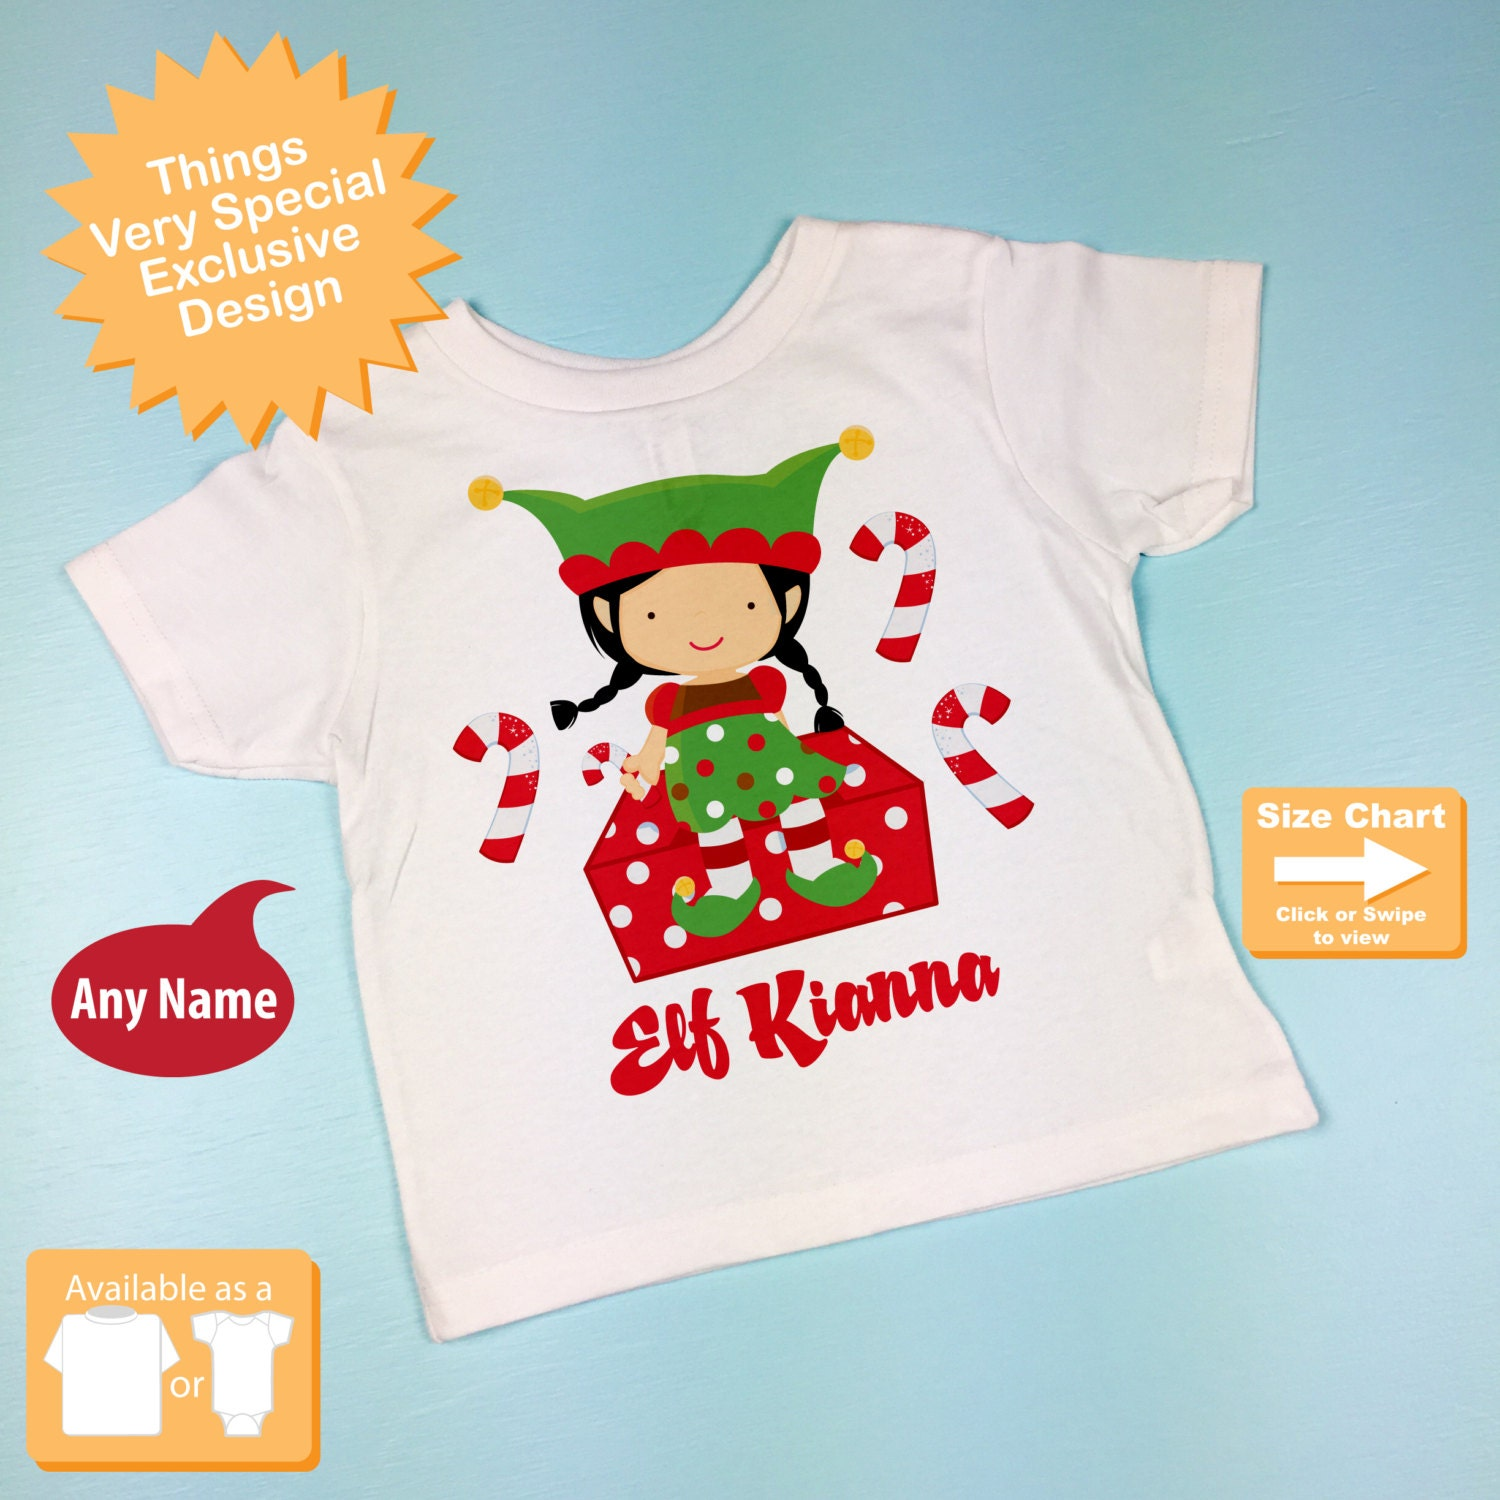 e43368d8e Girl's Christmas Shirt, Elf Shirt, Personalized Elf Tee Shirt or Onesie  11082013j. gallery photo ...